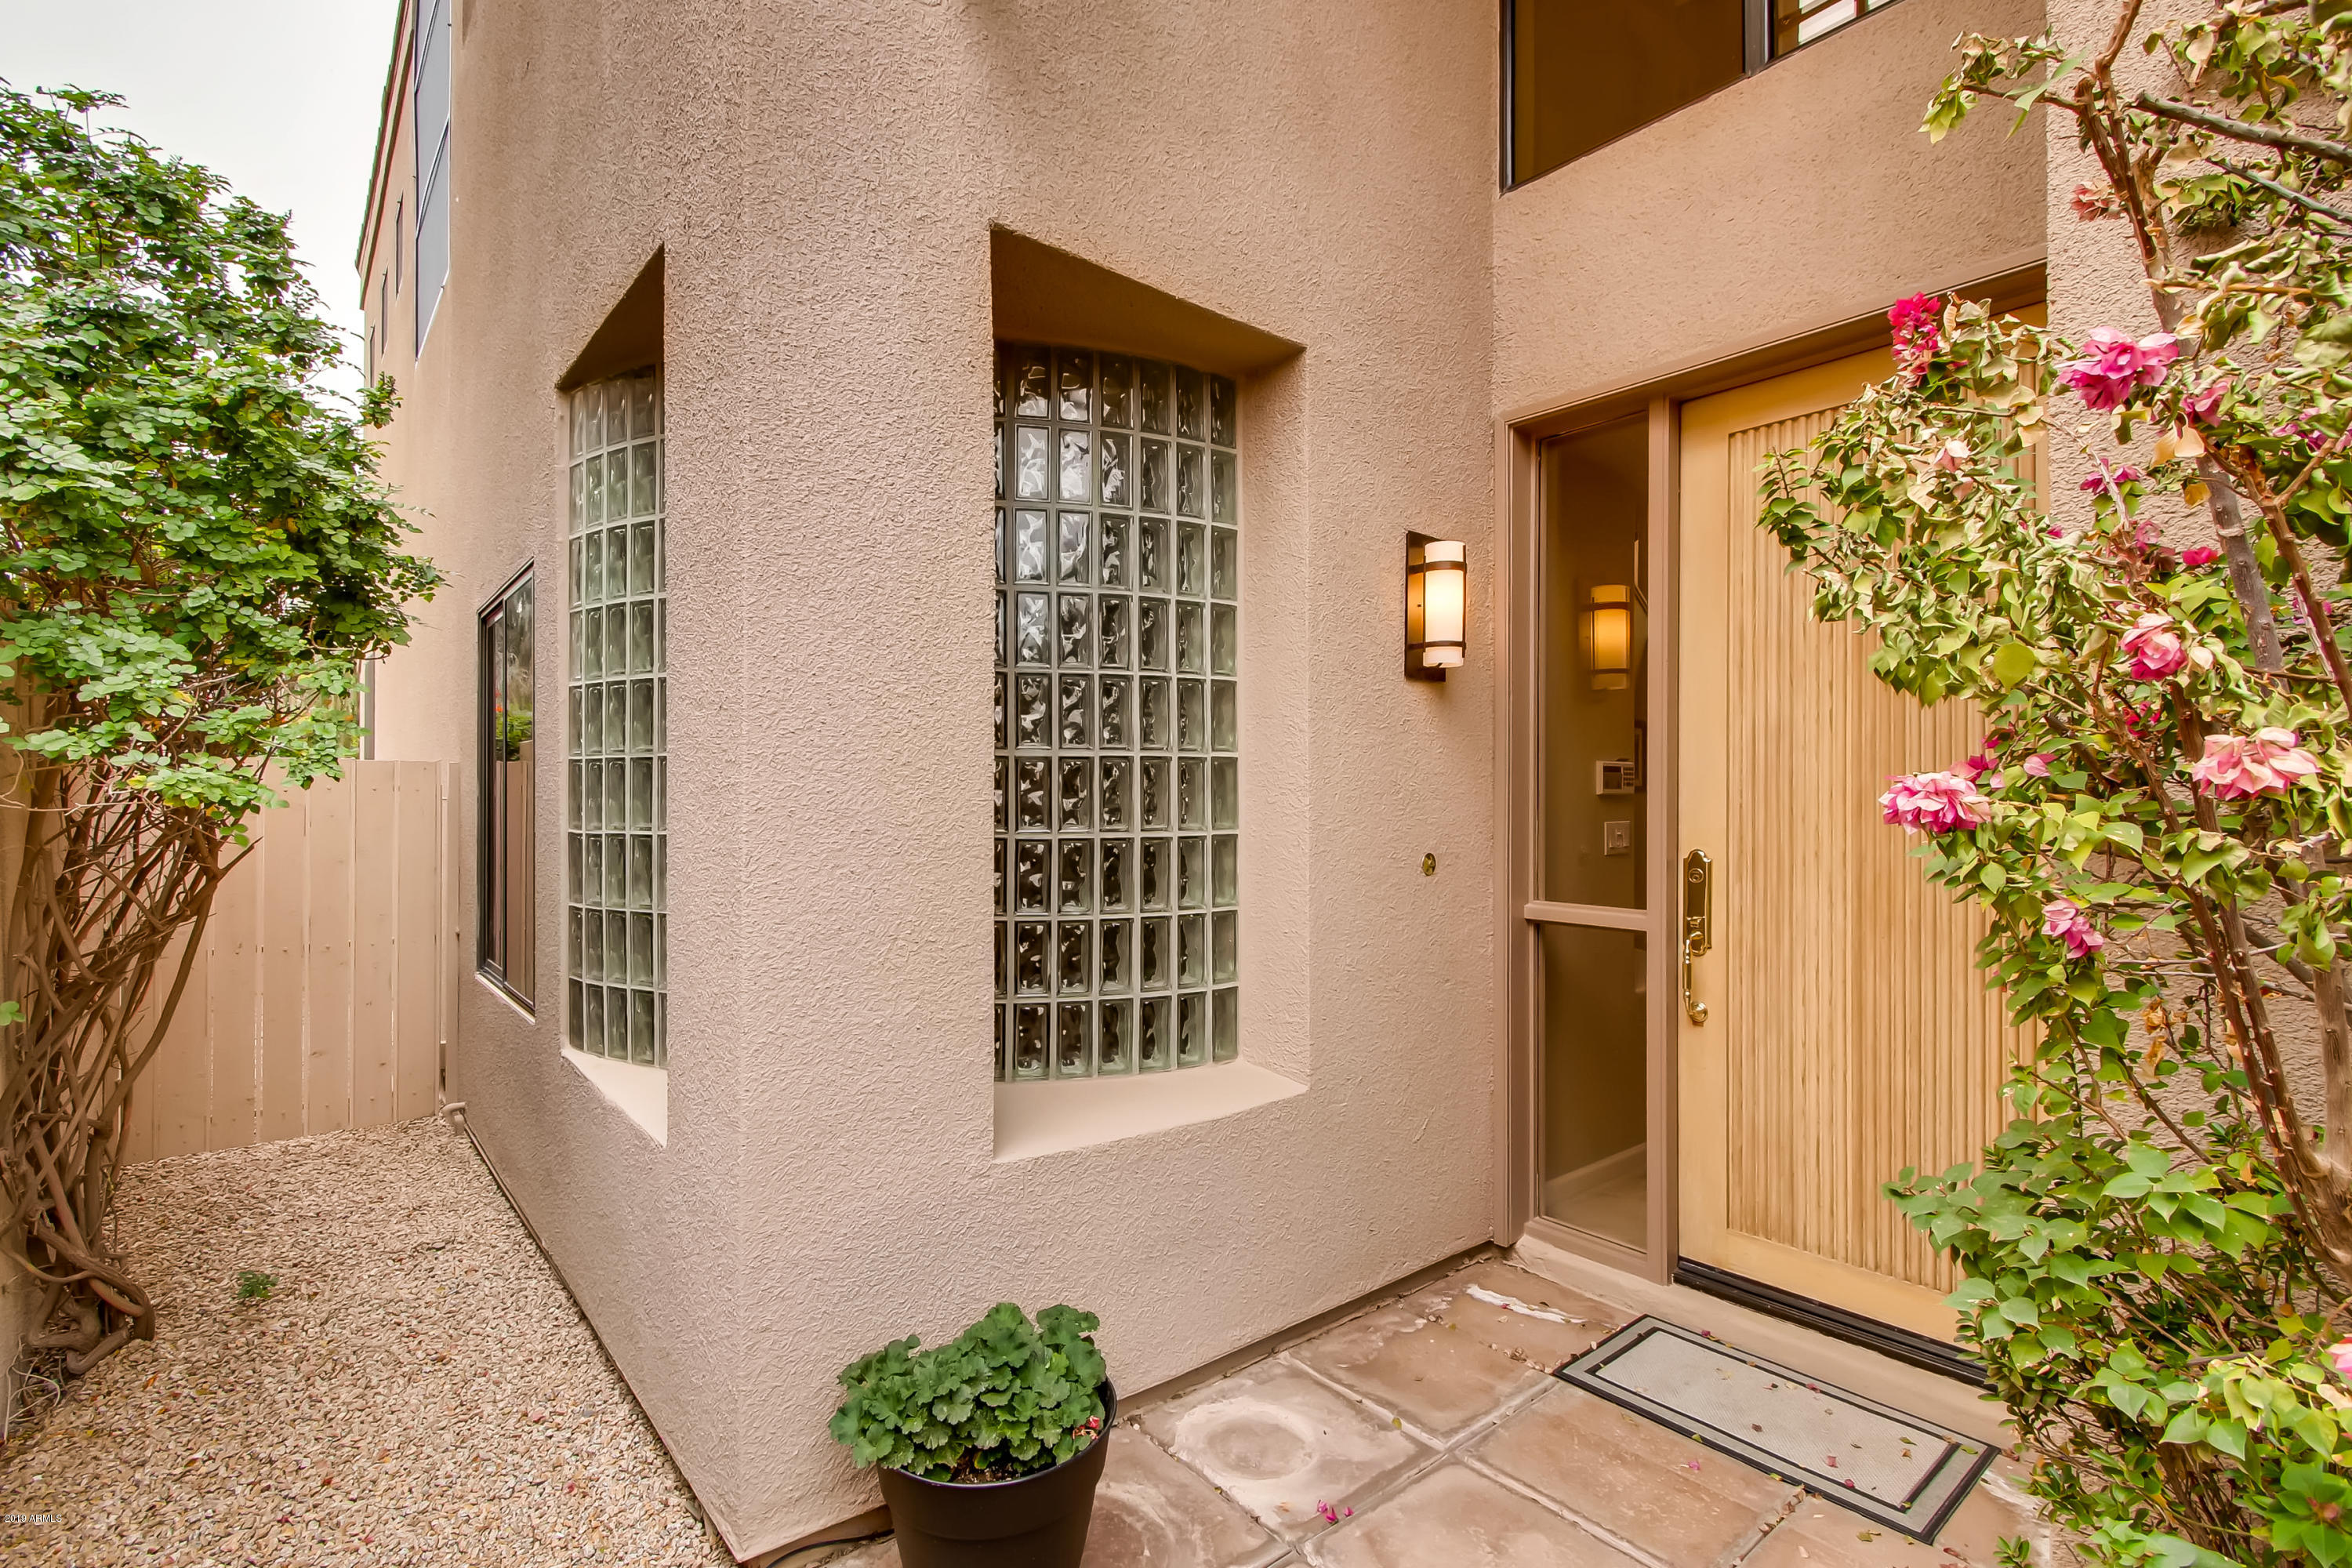 MLS 5869271 7770 E GAINEY RANCH Road Unit 5, Scottsdale, AZ 85258 Scottsdale AZ Gainey Ranch